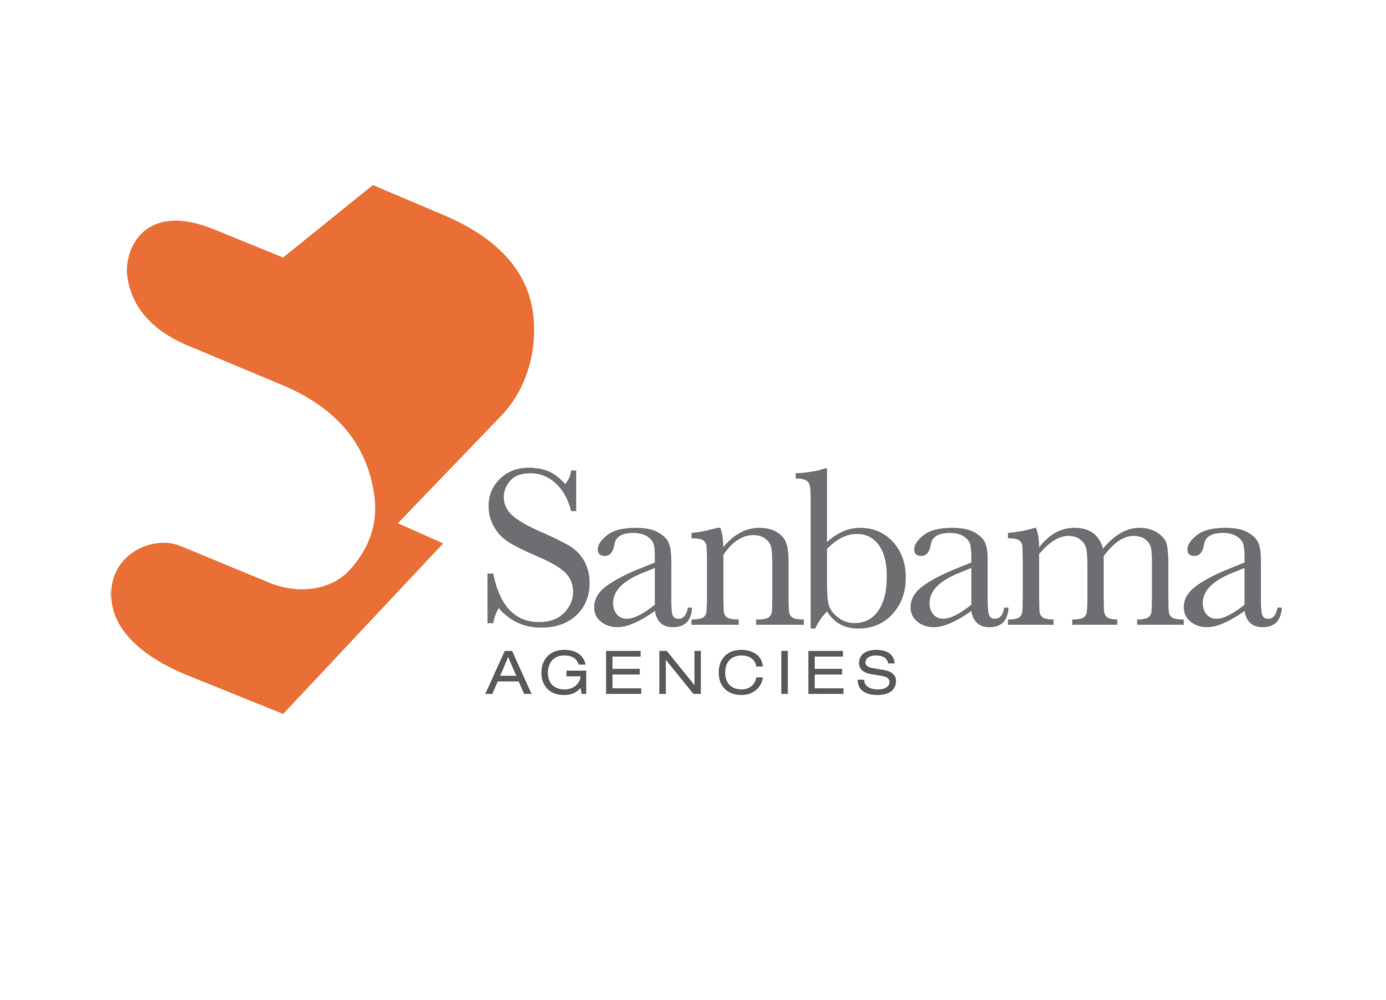 Sanbama Agencies